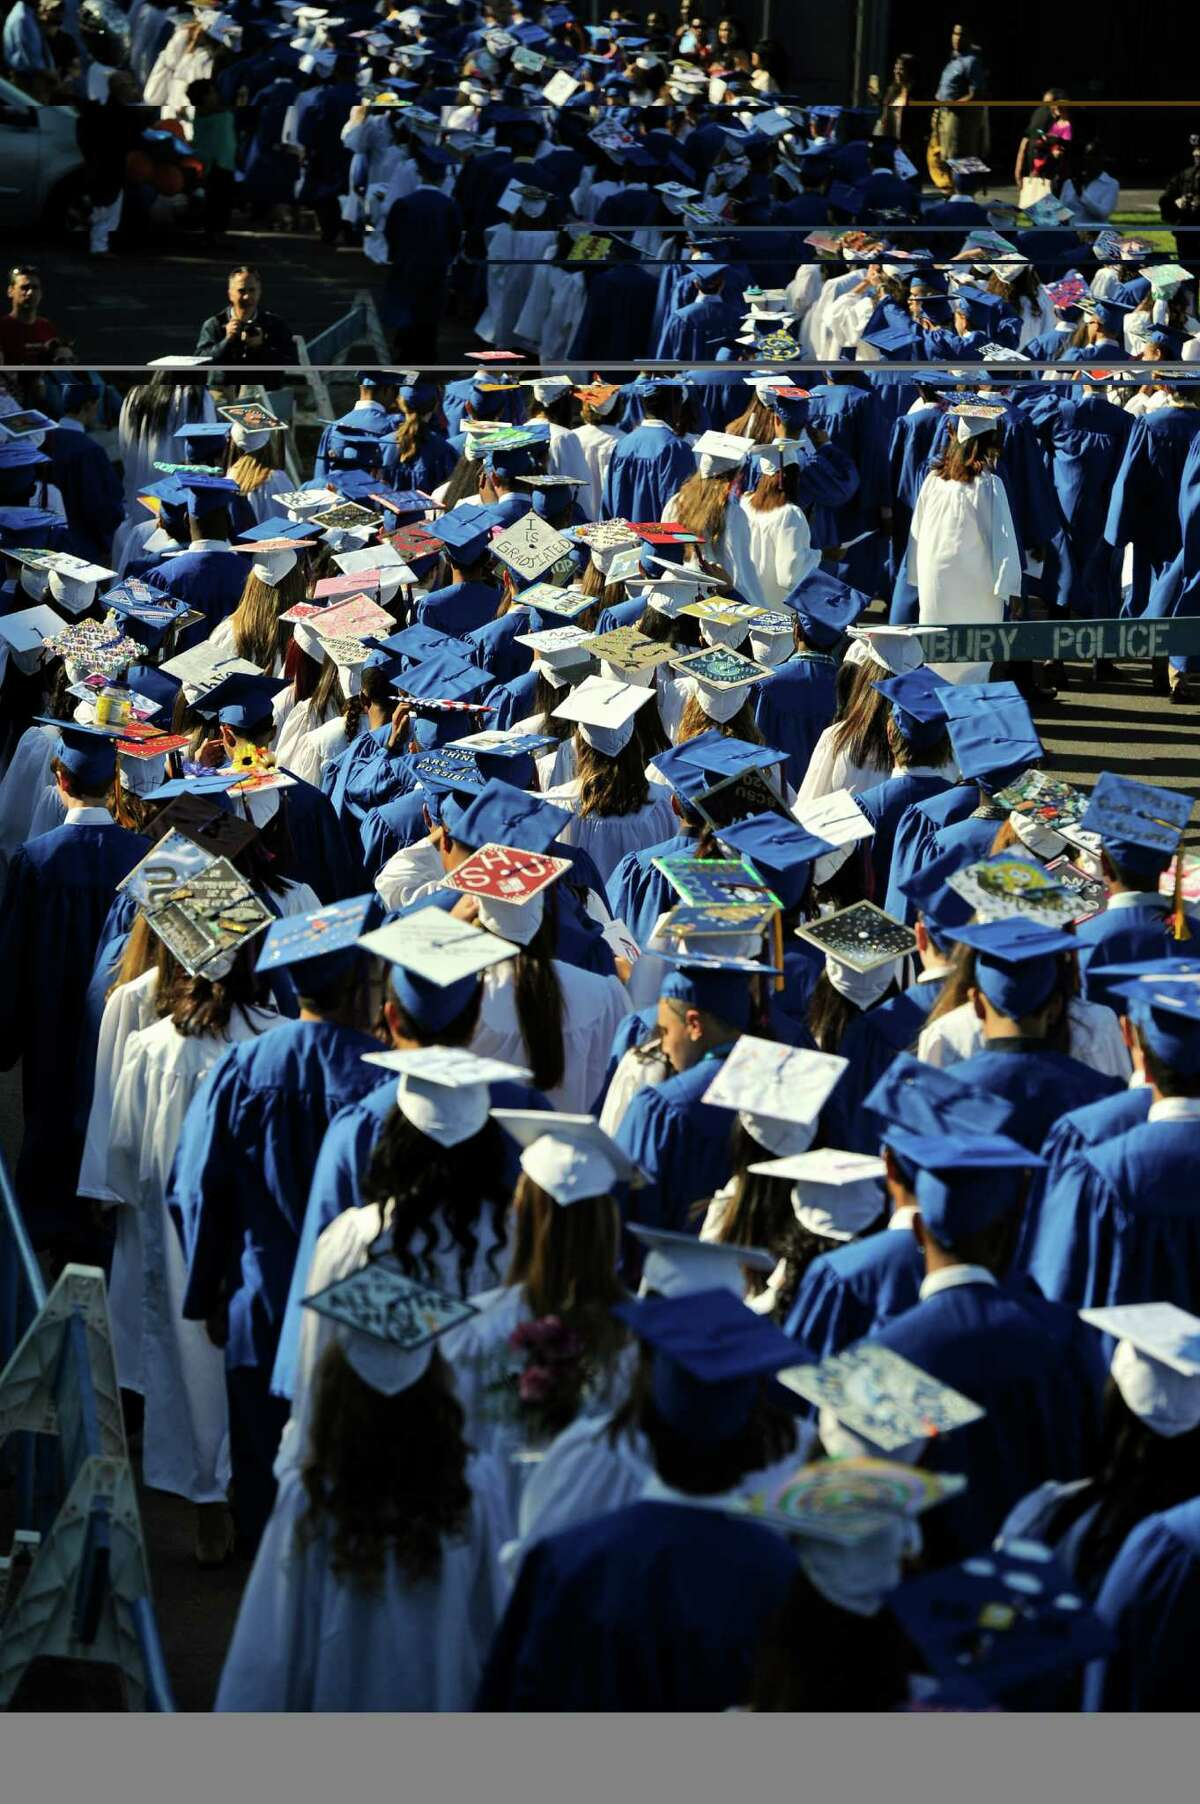 The Class of 2016 makes their way to the Danbury High School Stadium for the 2016 Commencement Exercises, held on Wednesday, June 9, 2016, in Danbury, Conn.